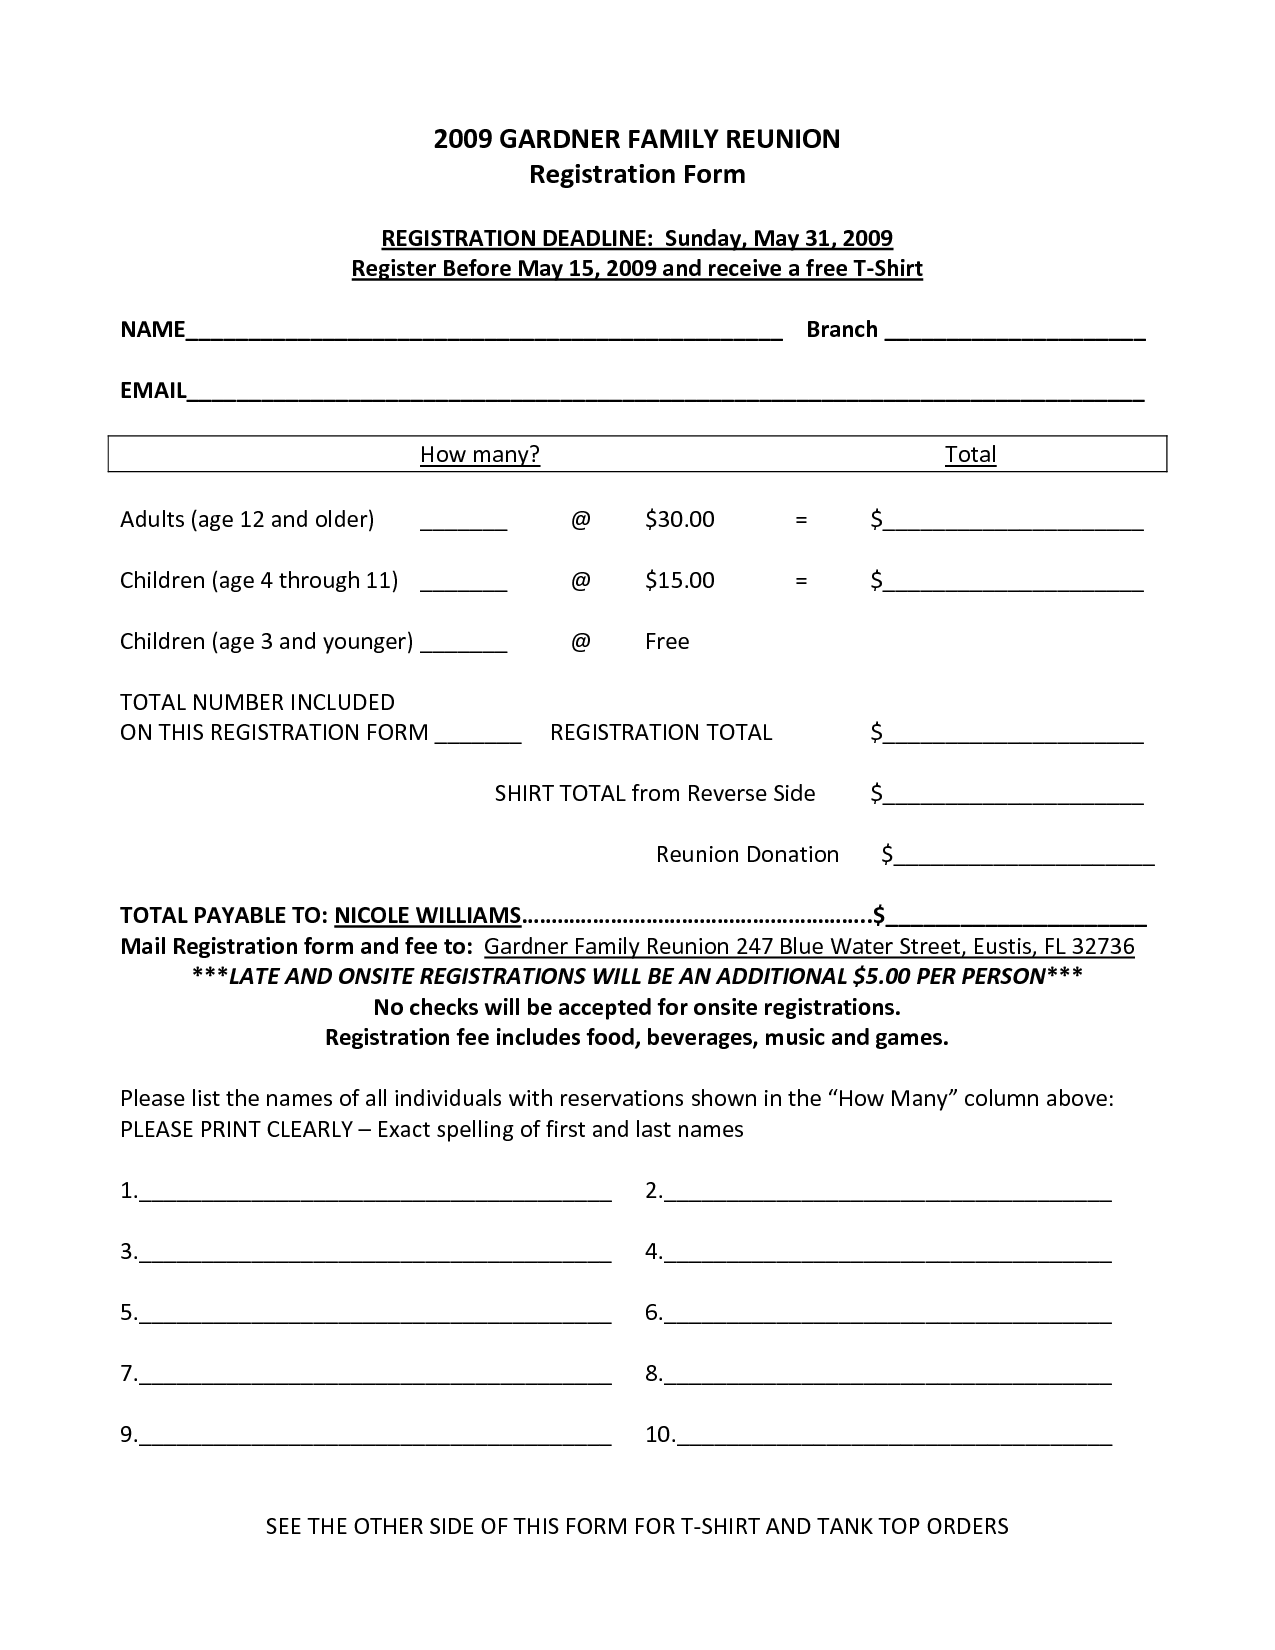 7 Best Images Of Family Reunion Forms Printable   Free Printable Family  Reunion Forms, Free Printable Family Reunion Forms And Family Reunion  Registration ...  Free Printable Family Reunion Templates